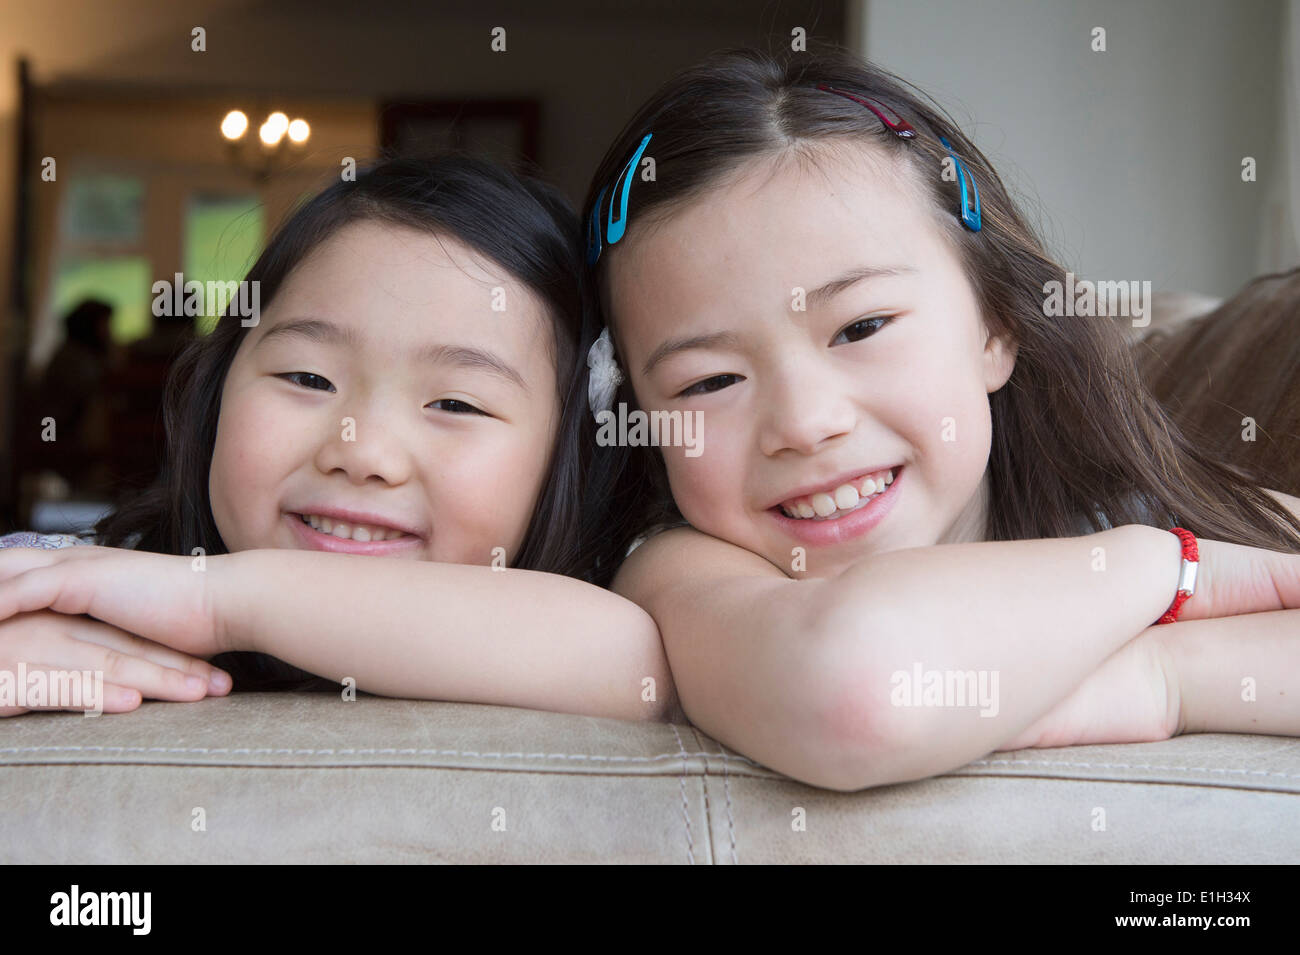 Portrait of two young girls leaning on sofa - Stock Image